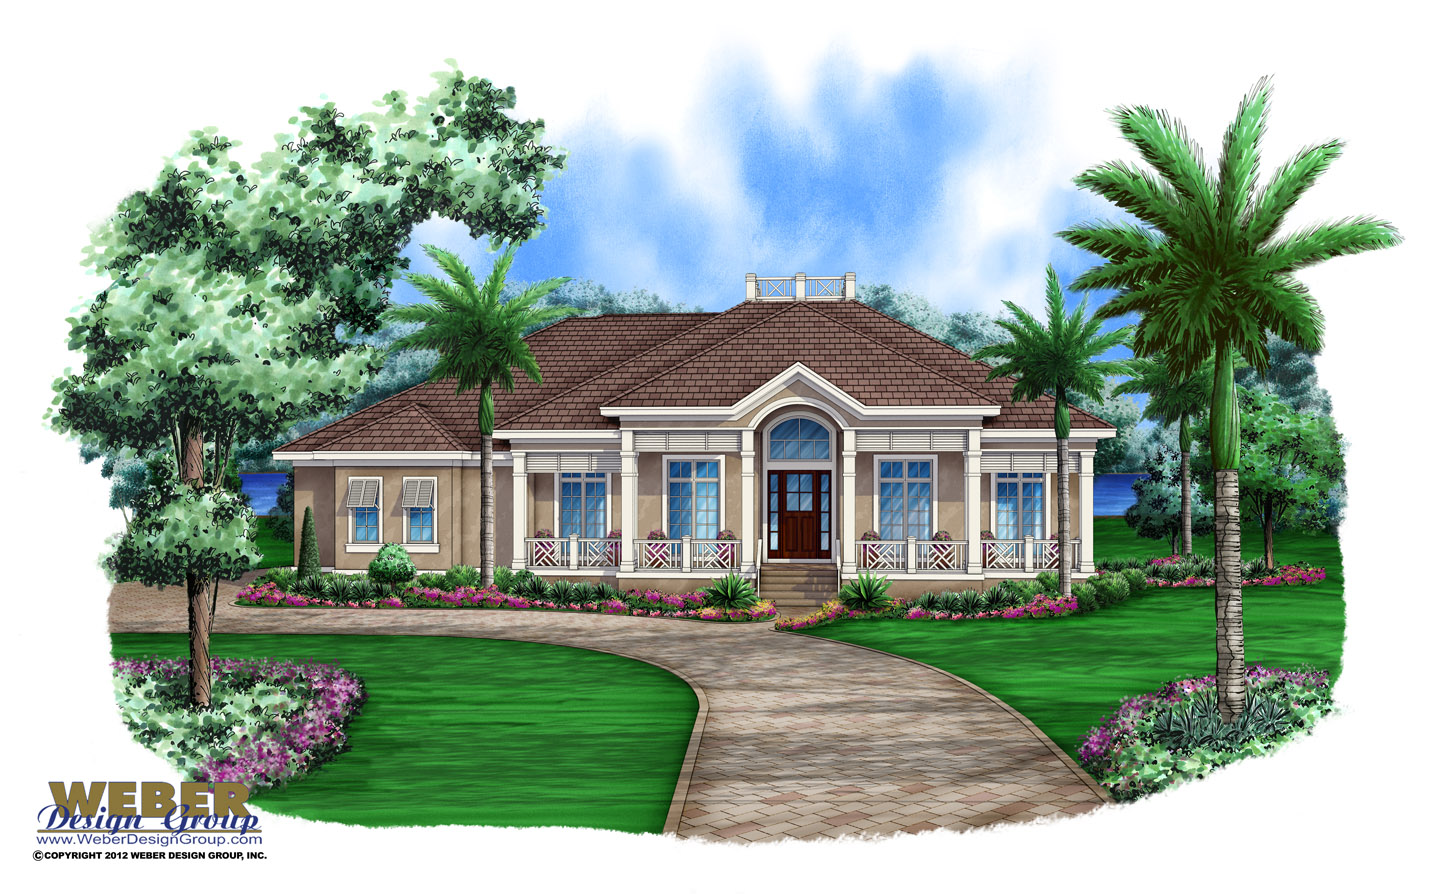 Olde florida plan aruba house plan weber design group for Fl home plans